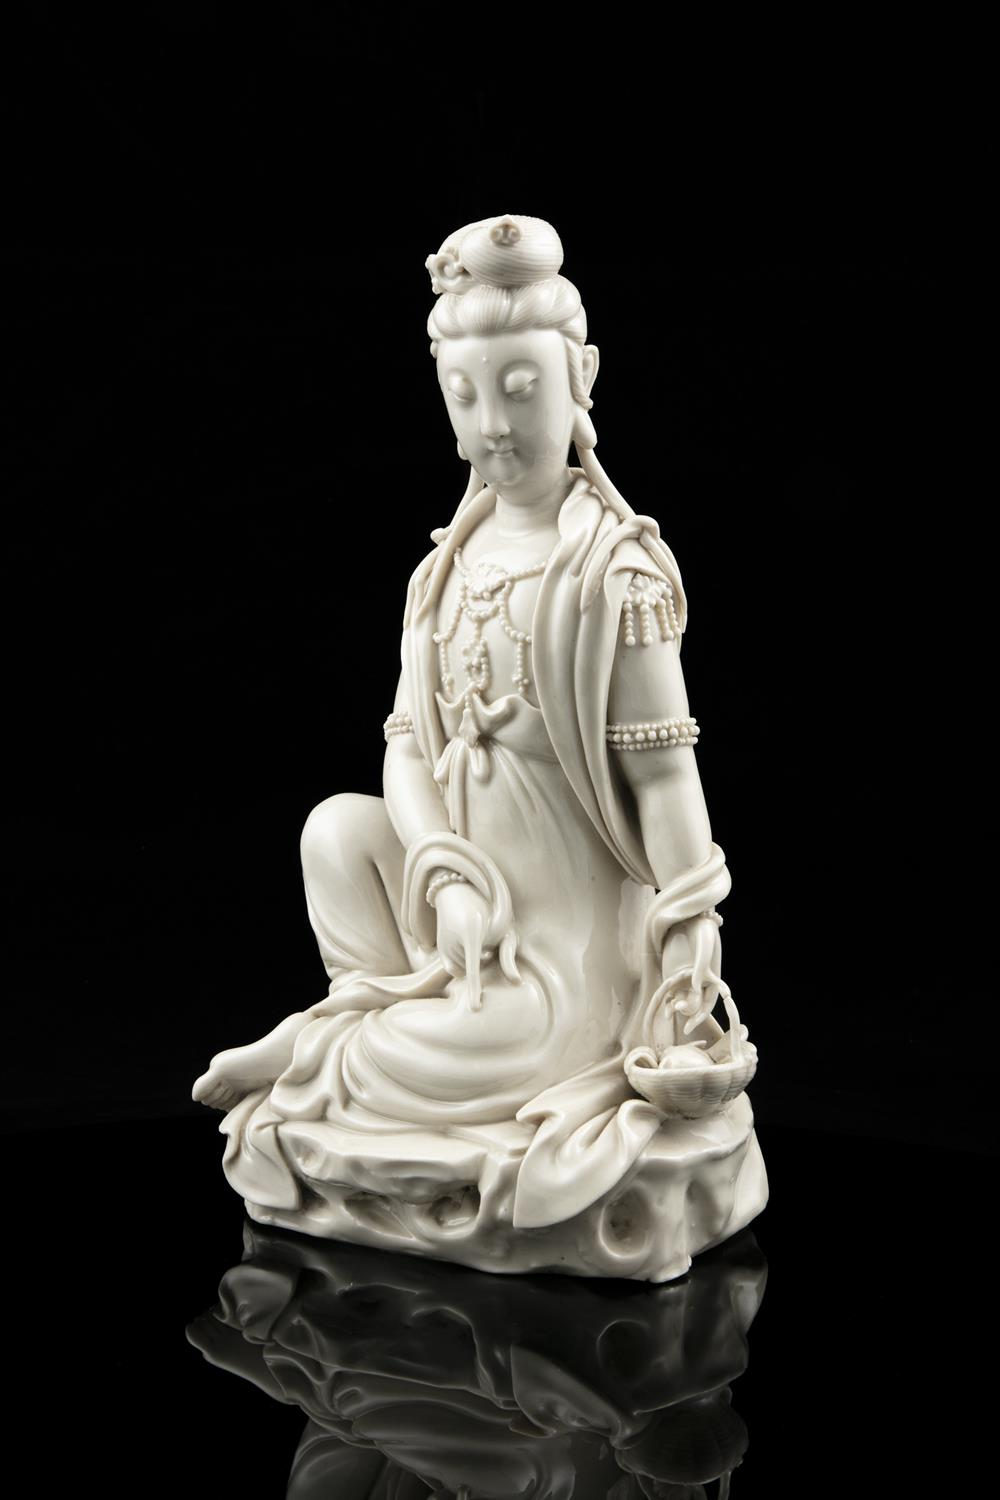 A LARGE DEHUA FIGURE OF A SEATED GUANYIN IMPRESSED WITH A HE CHAOZONG 何朝宗 CALABASH SHAPED SEAL - Image 34 of 48